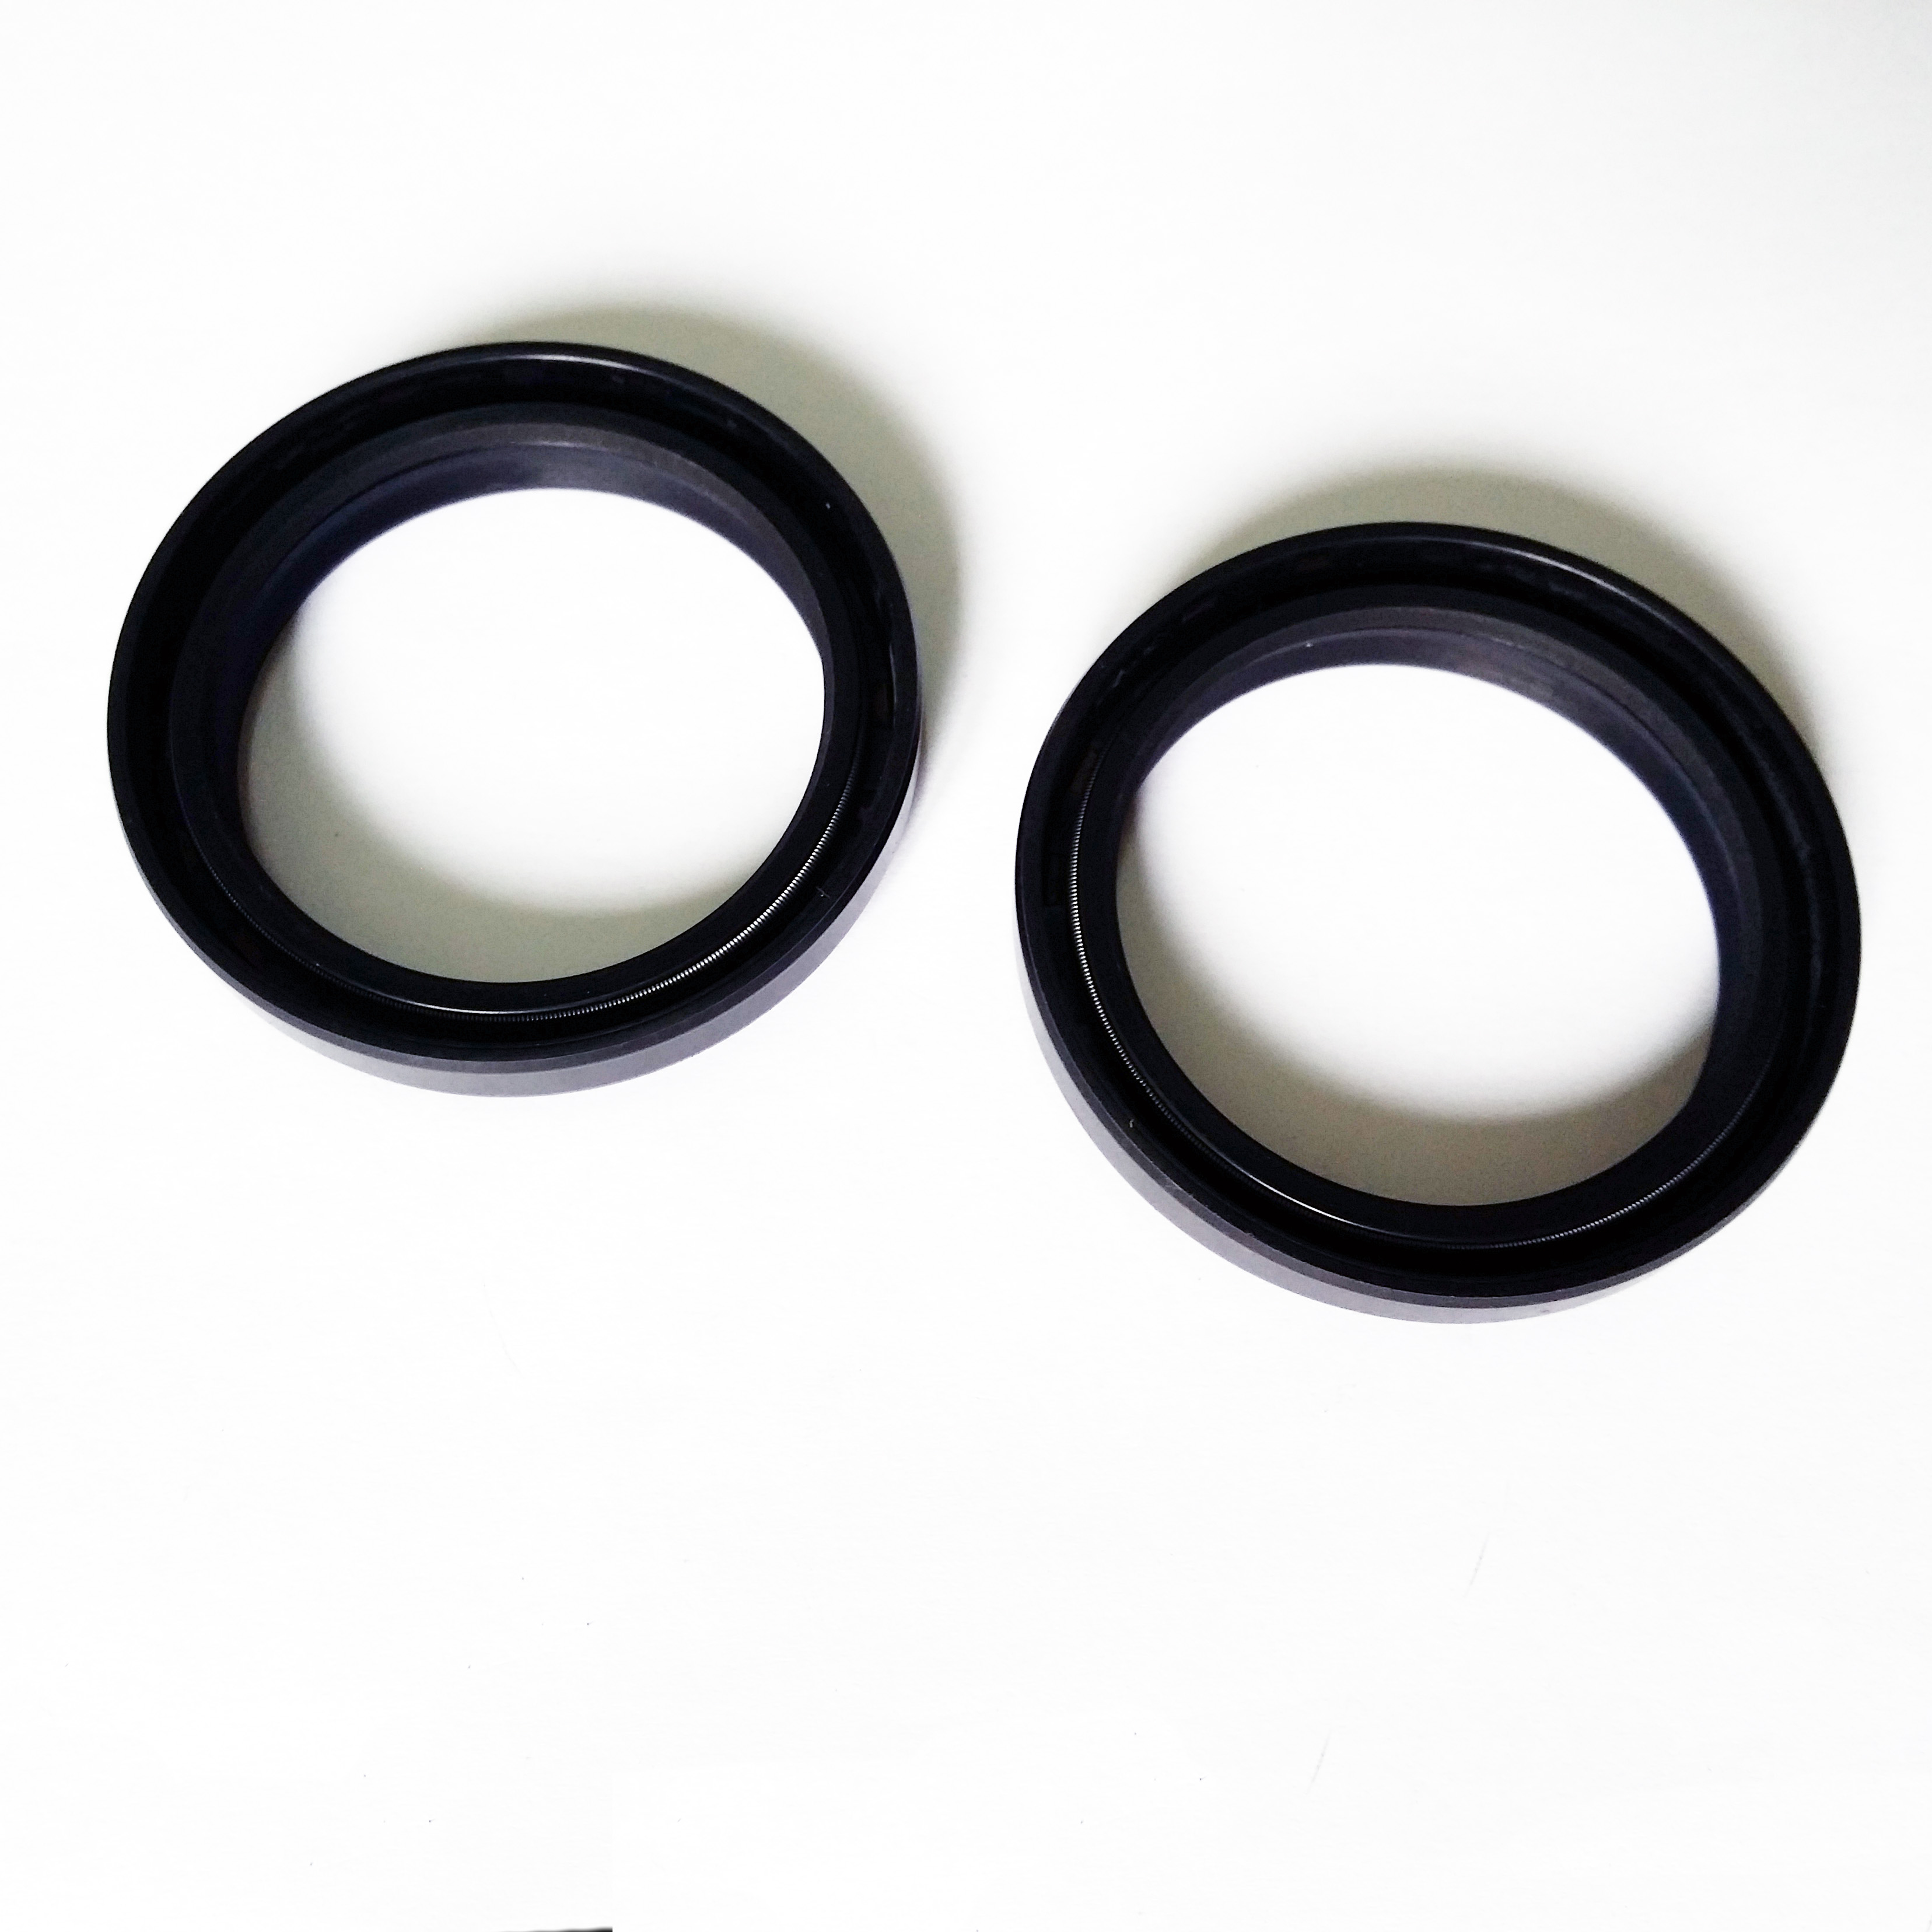 K-Tech Kawasaki KDX220 1992-1998 NOK Front Fork Oil Seals 43x55x9.5mm